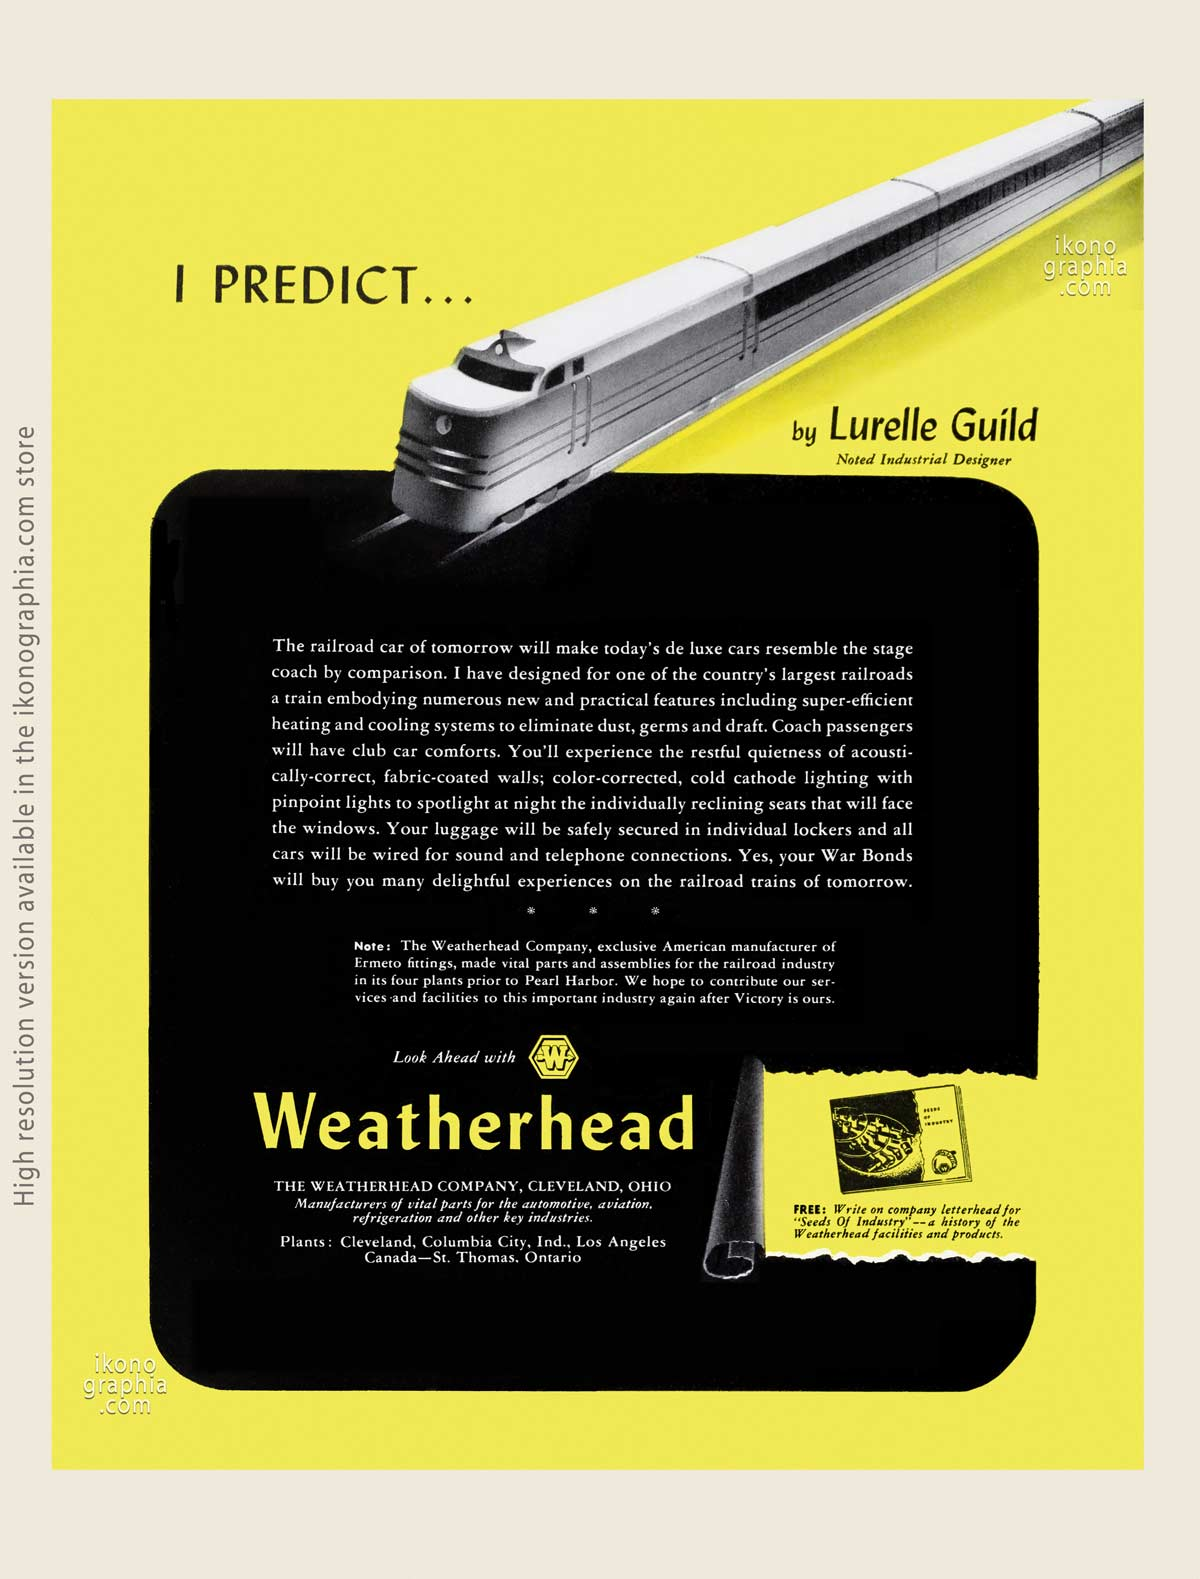 I Predict … by Lurelle Guild - The Weatherhead Company ad. artwork by Lurelle Guild